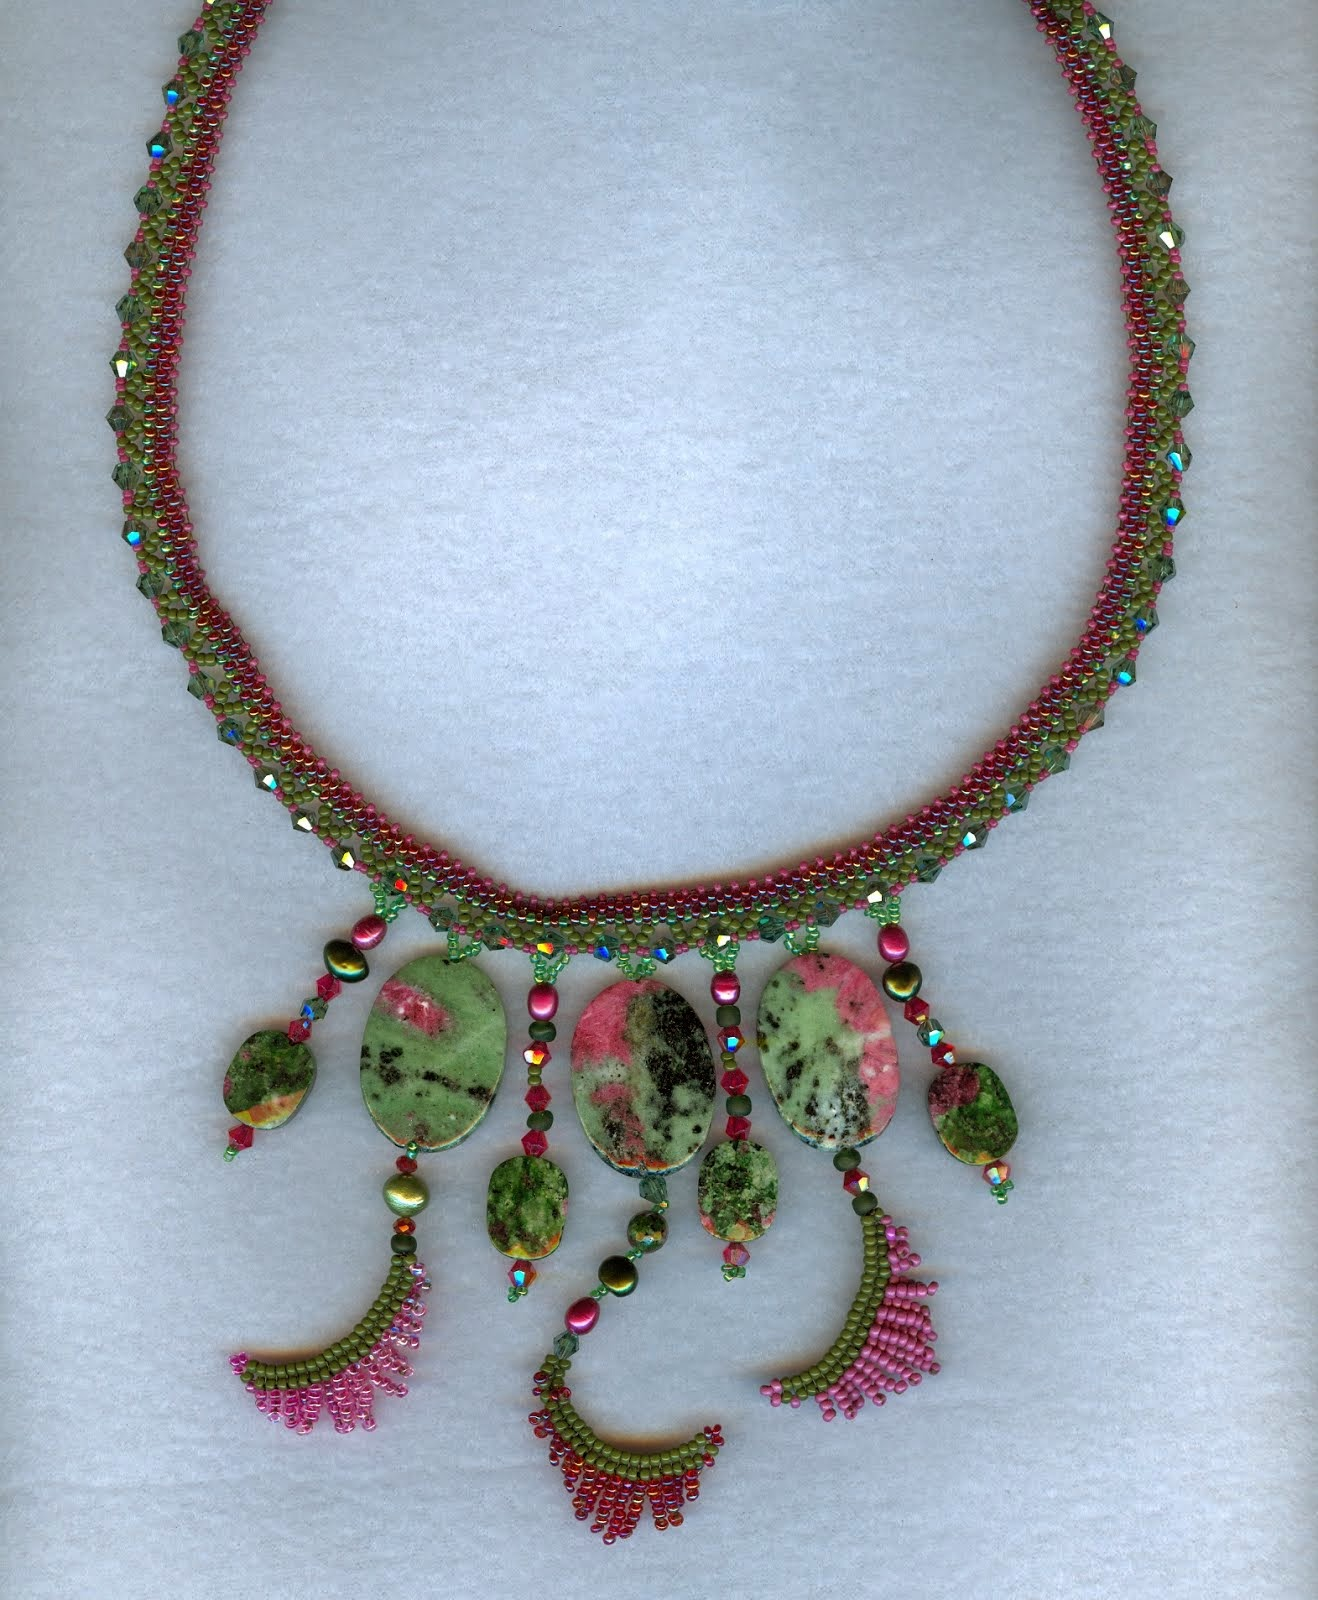 red green gemstones and beaded ferns